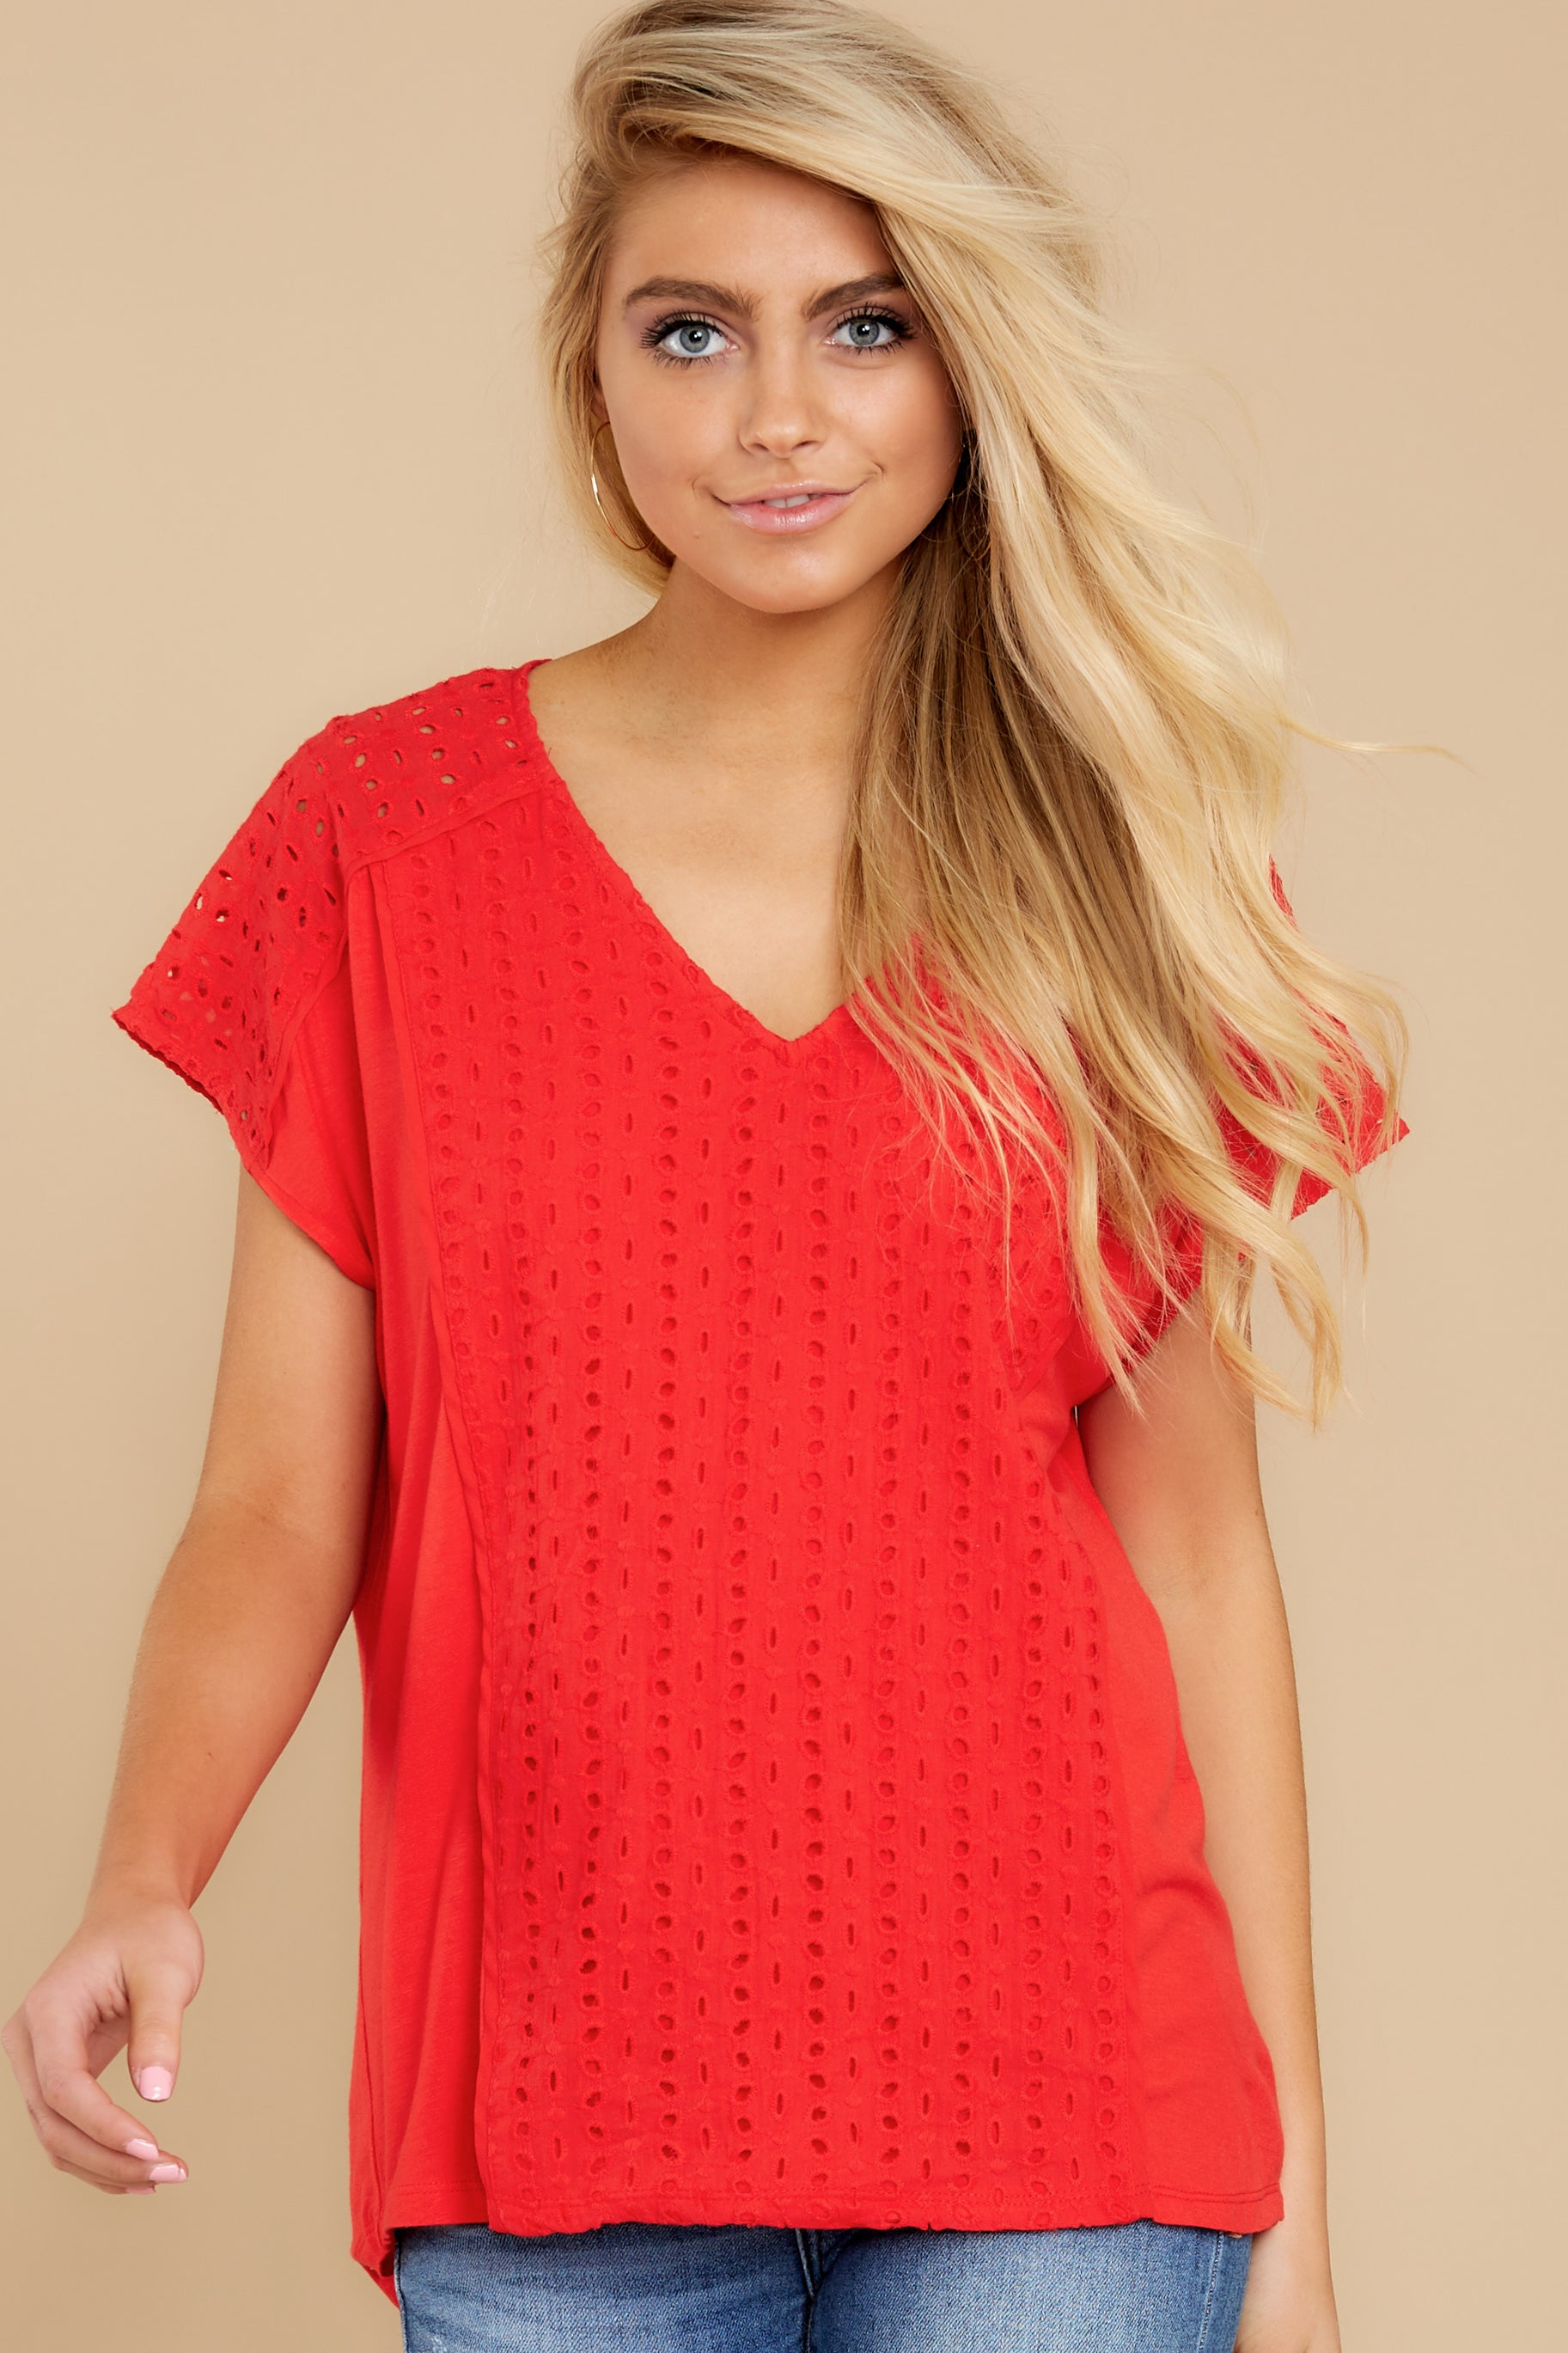 6 All My Time Red Eyelet Top at reddress.com